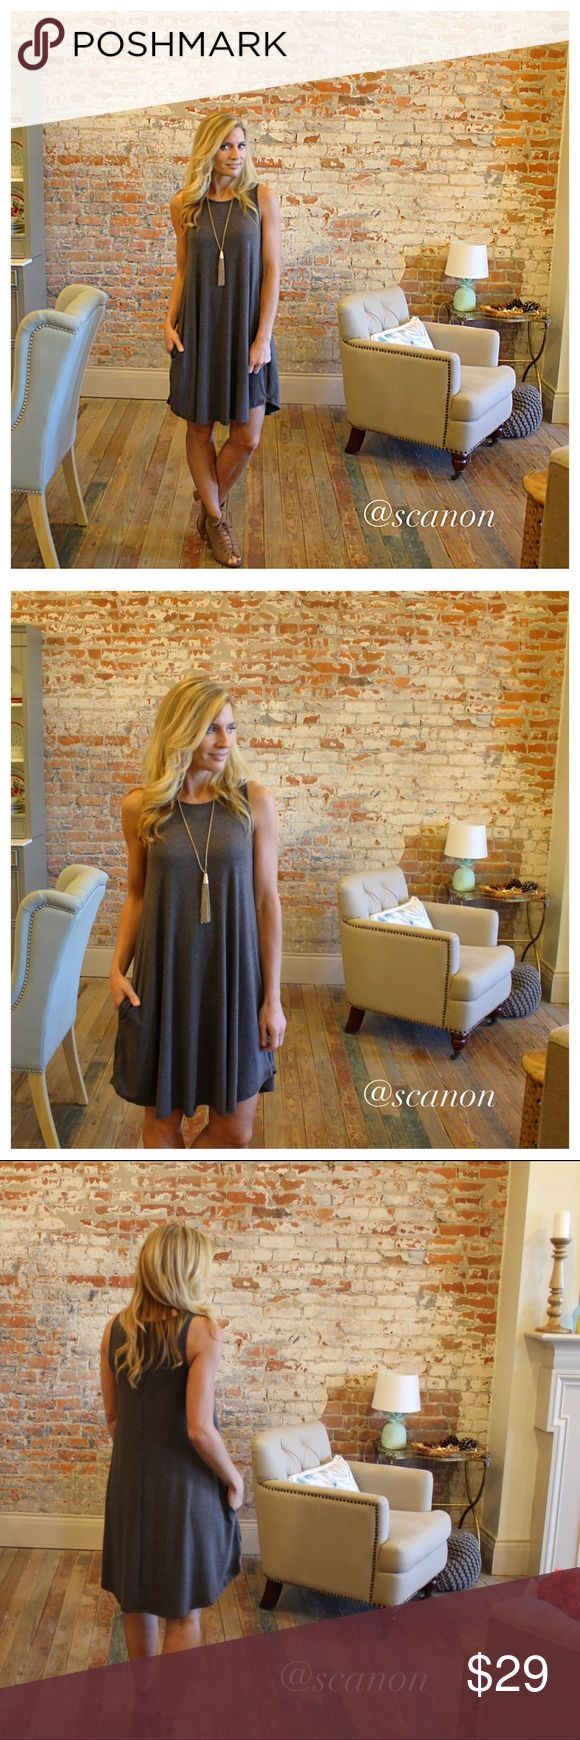 """Charcoal sleeveless swing dress with pockets Modeling size small. 67% polyester 28% rayon 5% spandex. Bust laying flat: S 15"""" M 16"""" L 17"""" XL 18"""",, length S 34"""" M 35"""" L 36"""" XL 36.5"""". Add to bundle to save when purchasing. ZN4750126 Dresses"""